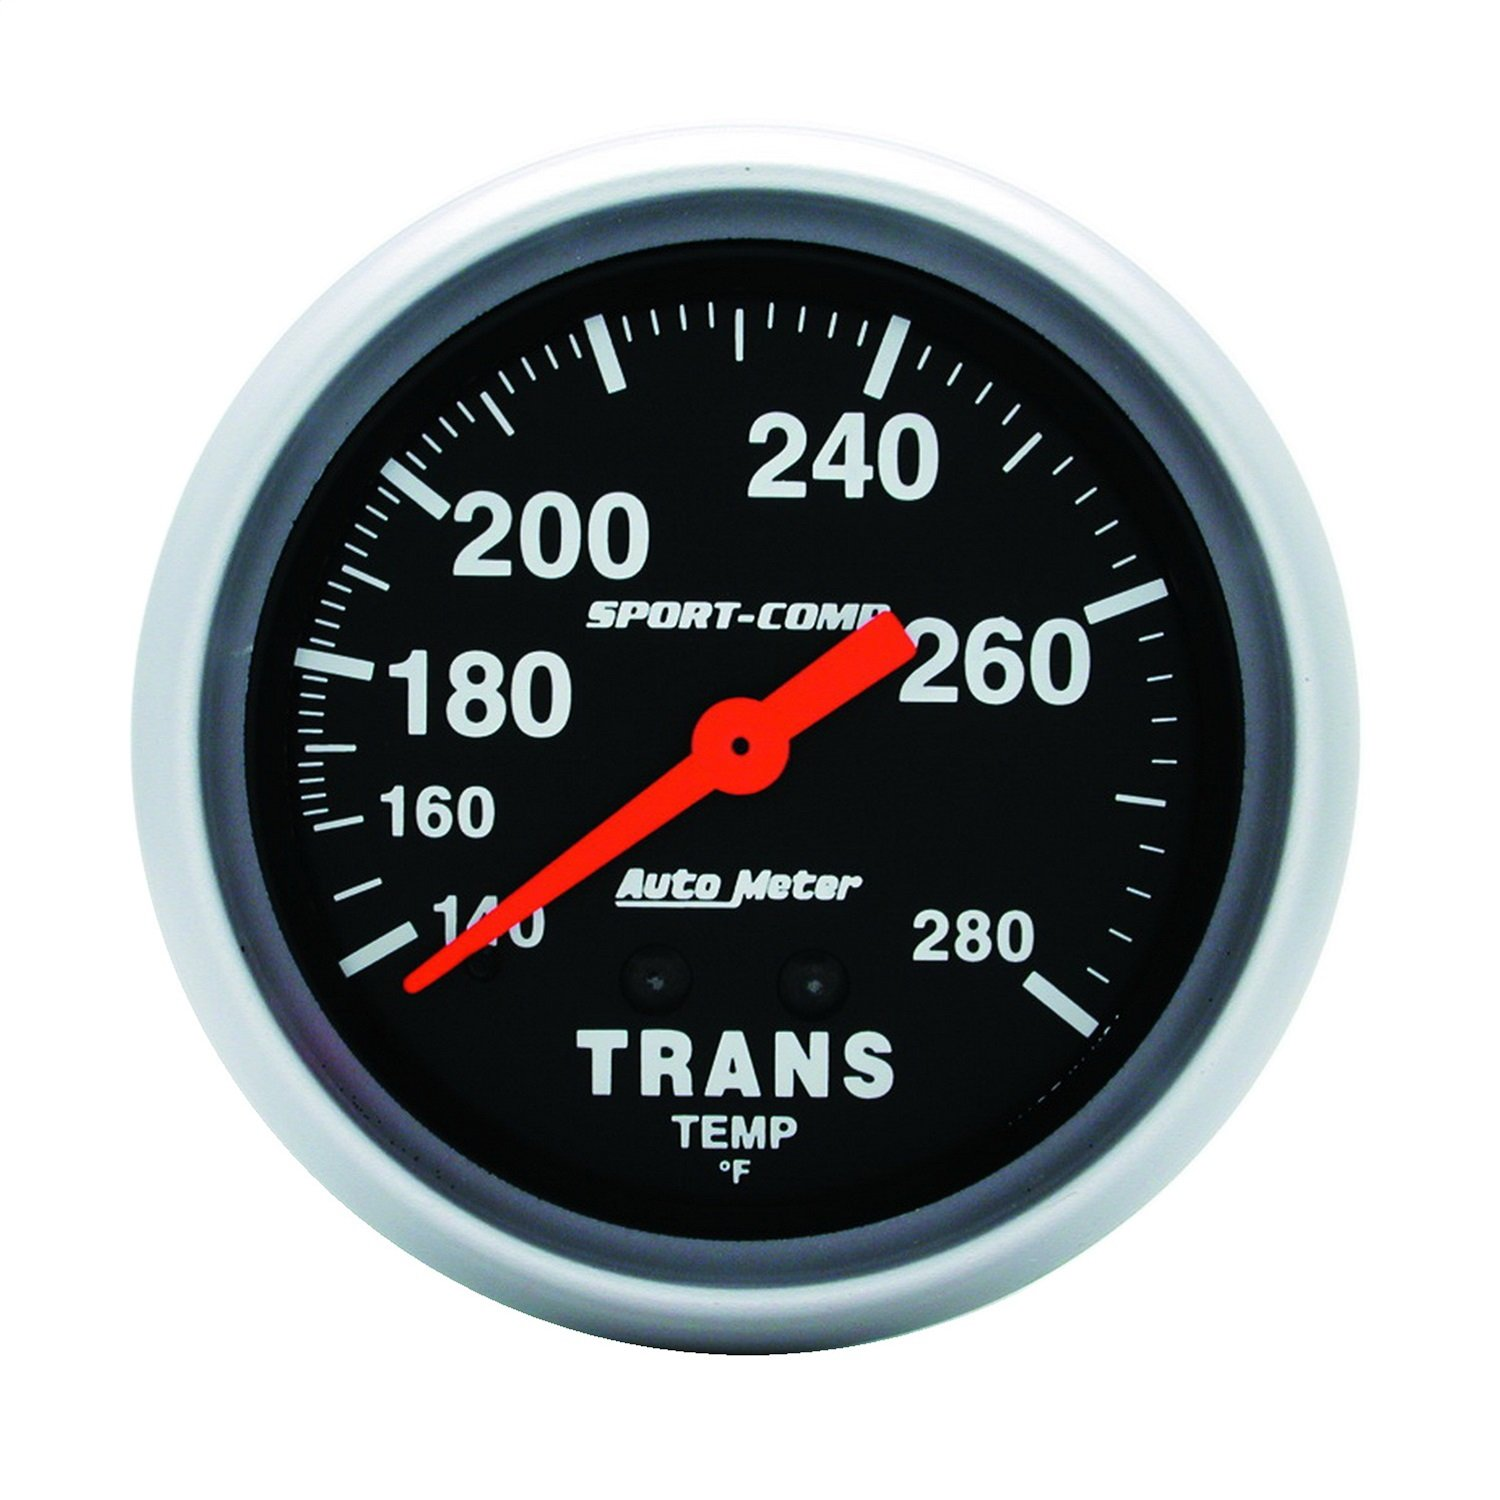 Auto Meter 3451 2-5/8' Mechanical Transmission Temperature Gauge with 8' Tubing